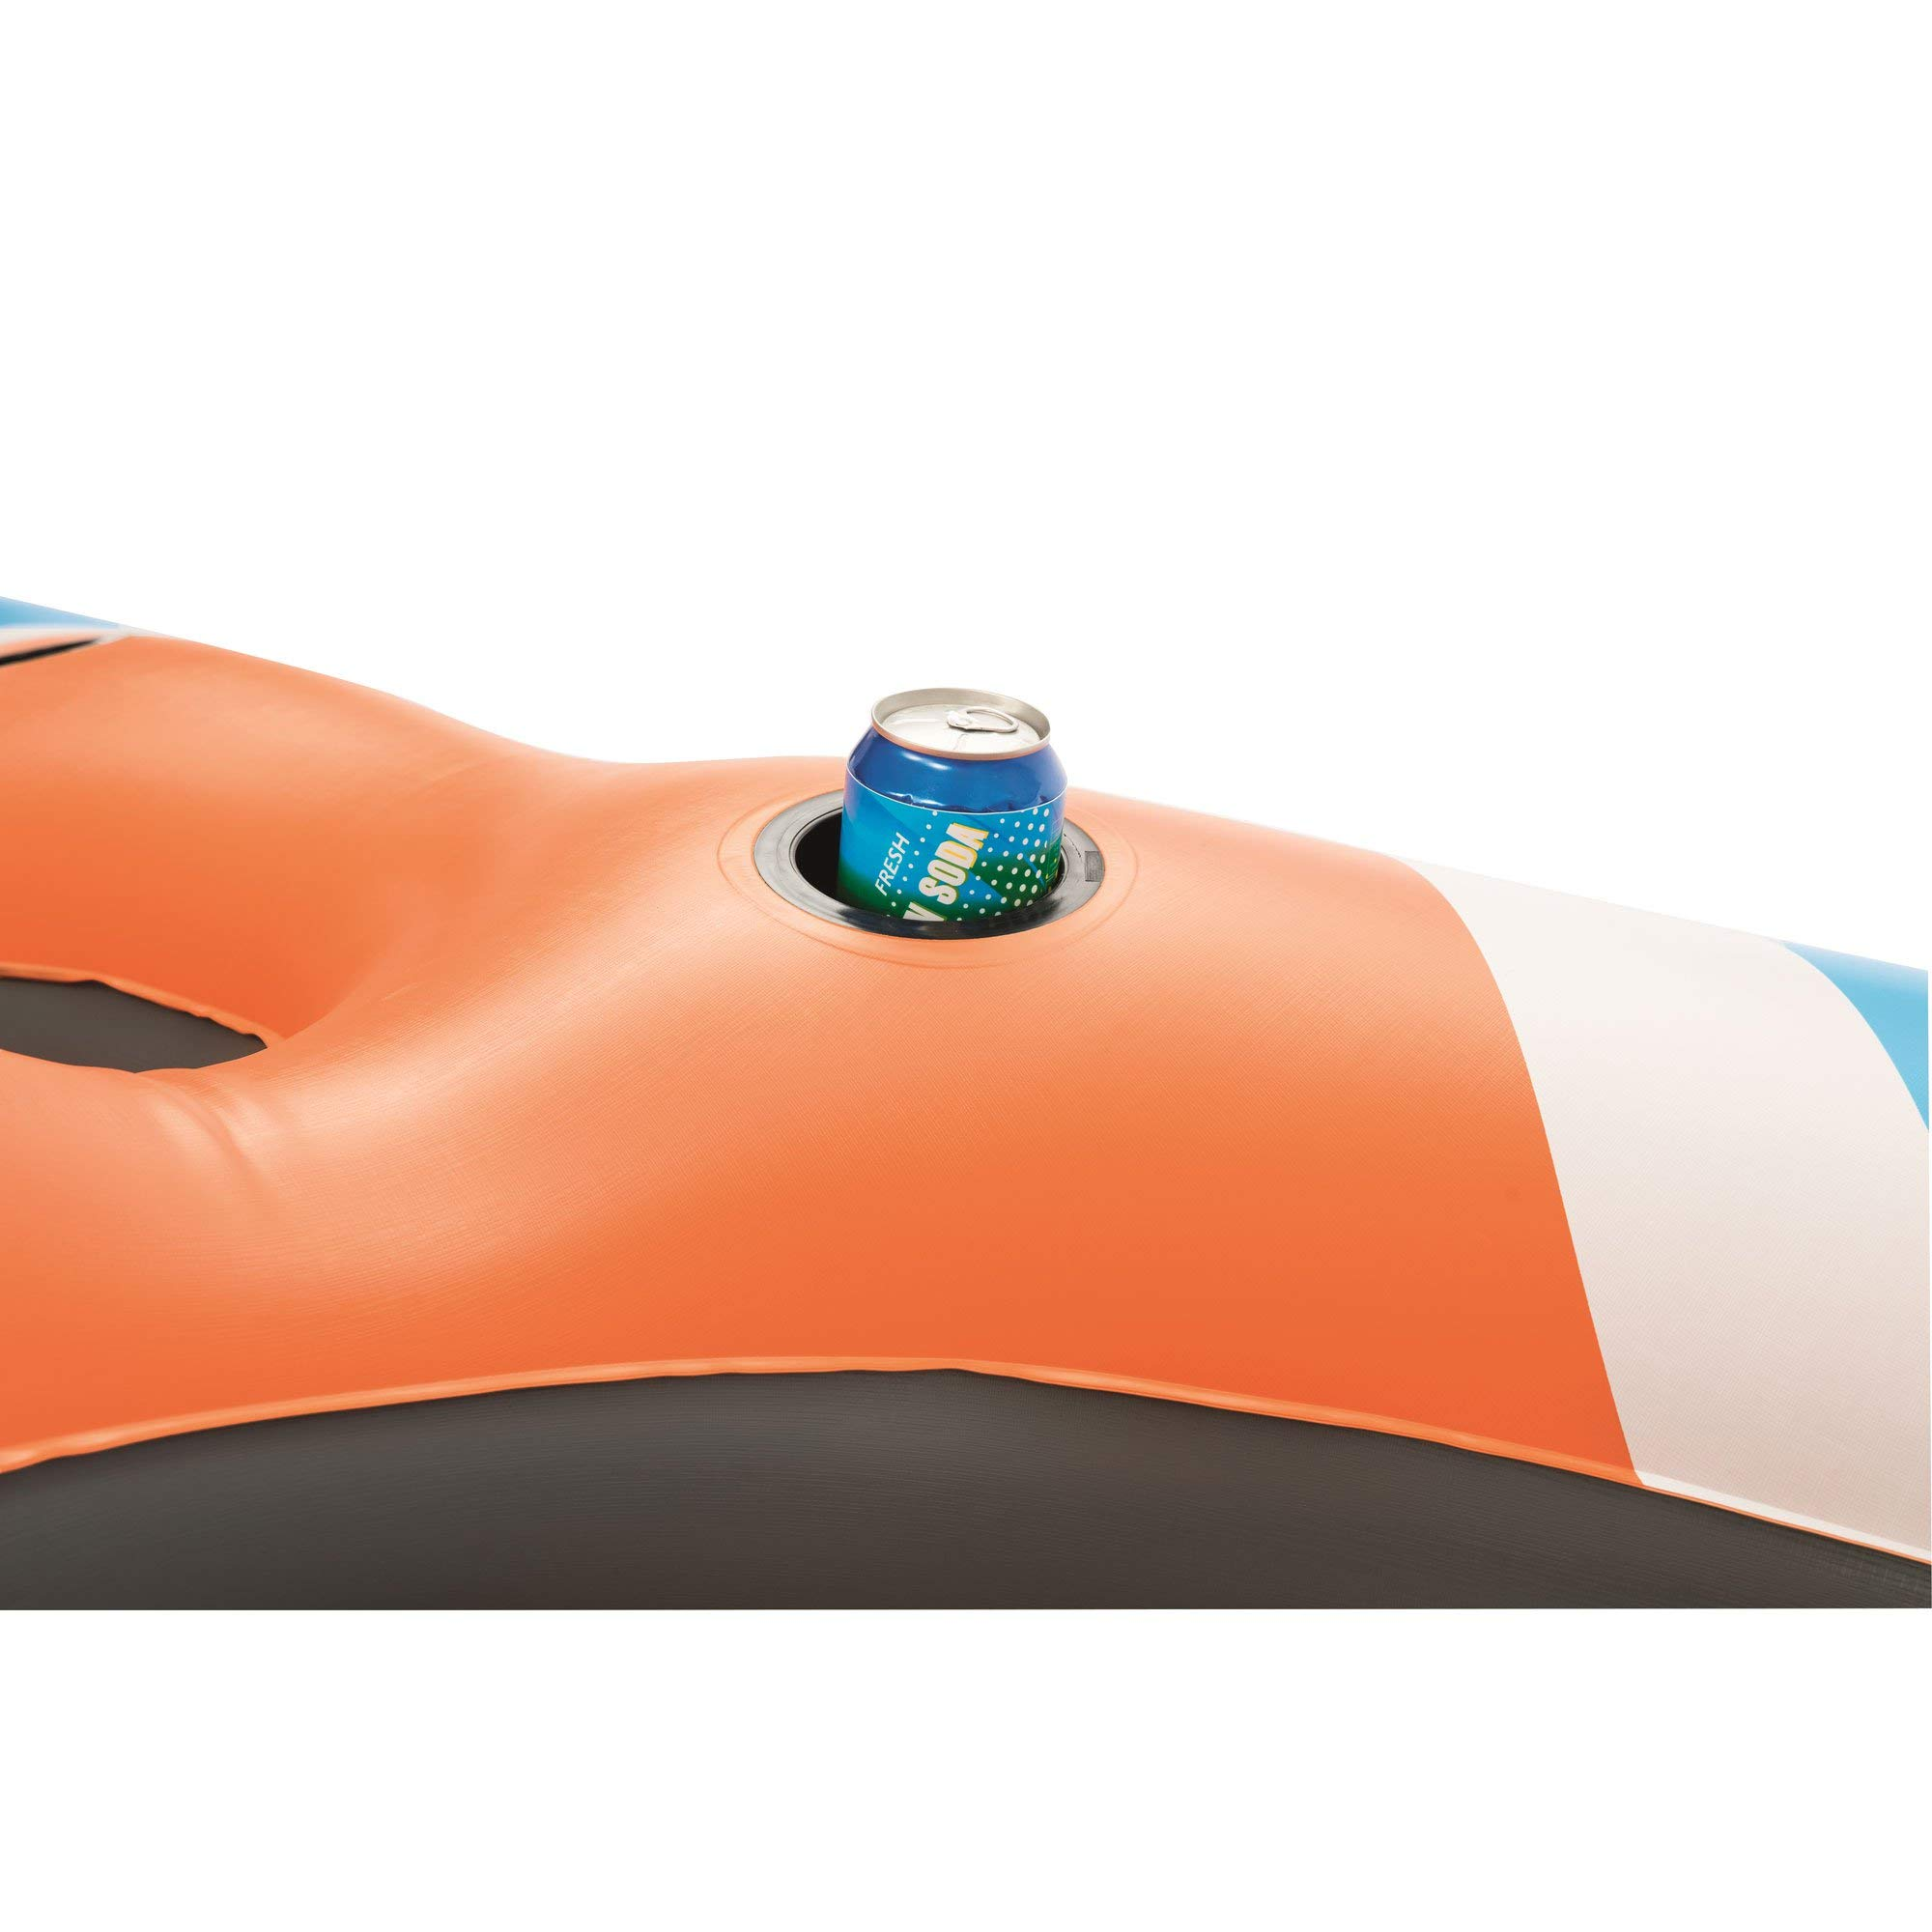 CoolerZ Rapid Rider X4 Inflatable 4-Person Island Tube by Bestway (Image #9)